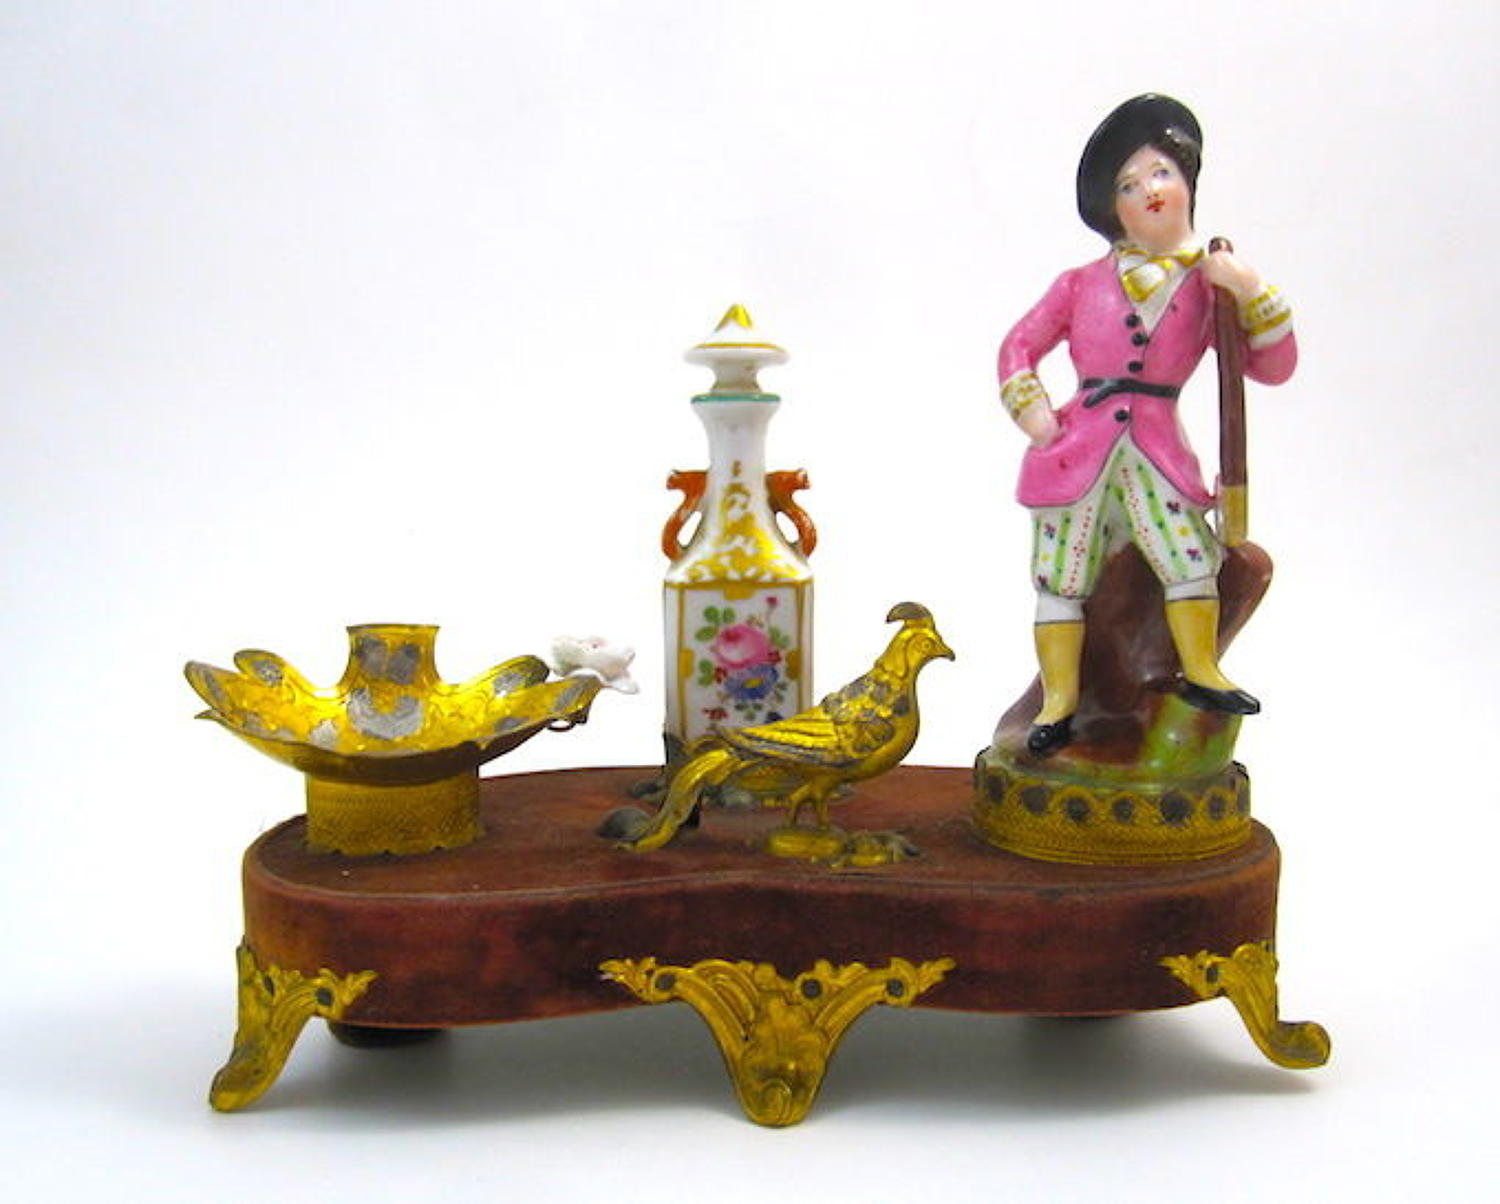 A Rare French 19th Century French Porcelain Perfume Set